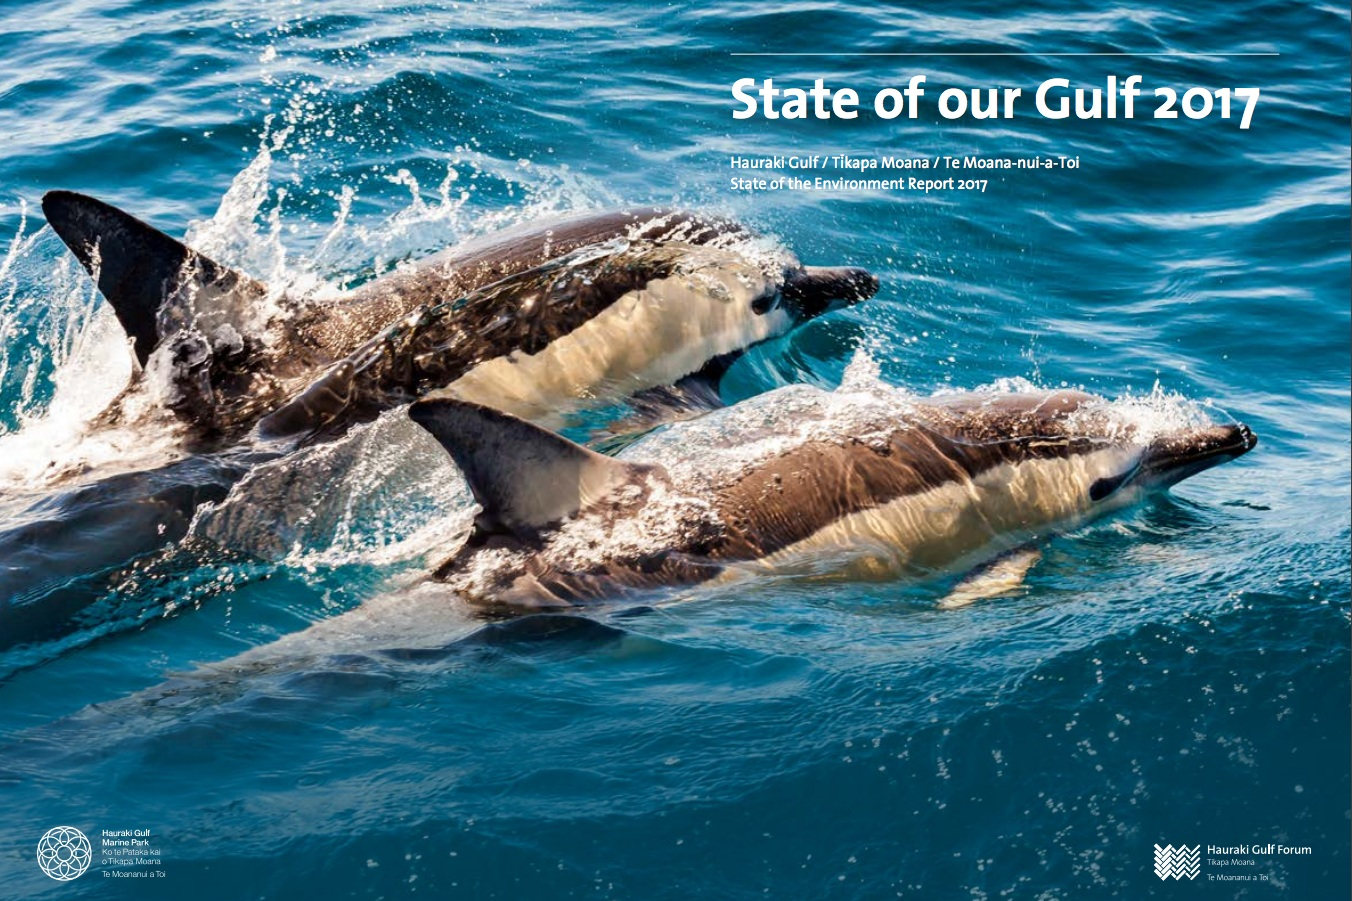 The State of our Gulf 2017 Report, published by Hauraki Gulf Forum (December 2017)